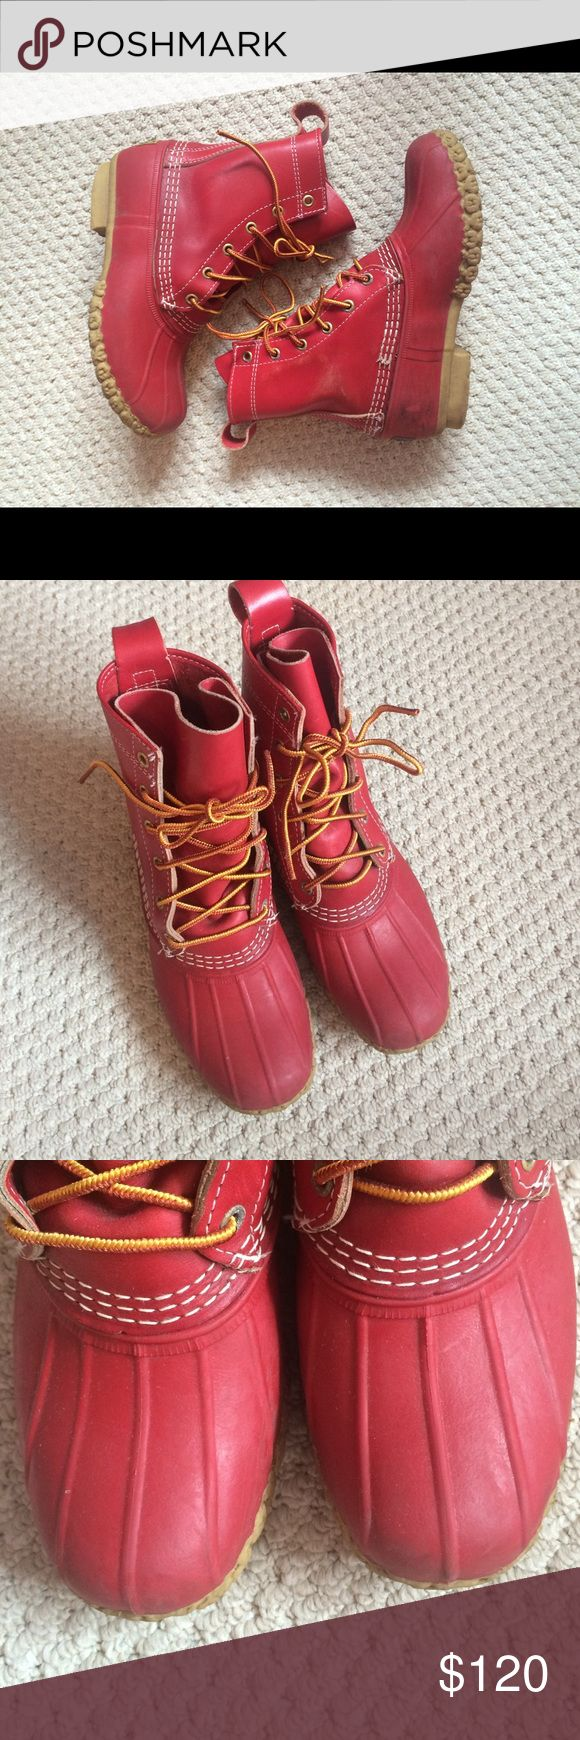 """Rare Red Limited-Edition LL Bean Boots Cute 8"""" duck boots! Worn for 1 season. I'm a size 6.5 and can't keep living a lie. They're a size 6 but could probably fit a size 7.5. LL Bean Shoes Winter & Rain Boots"""